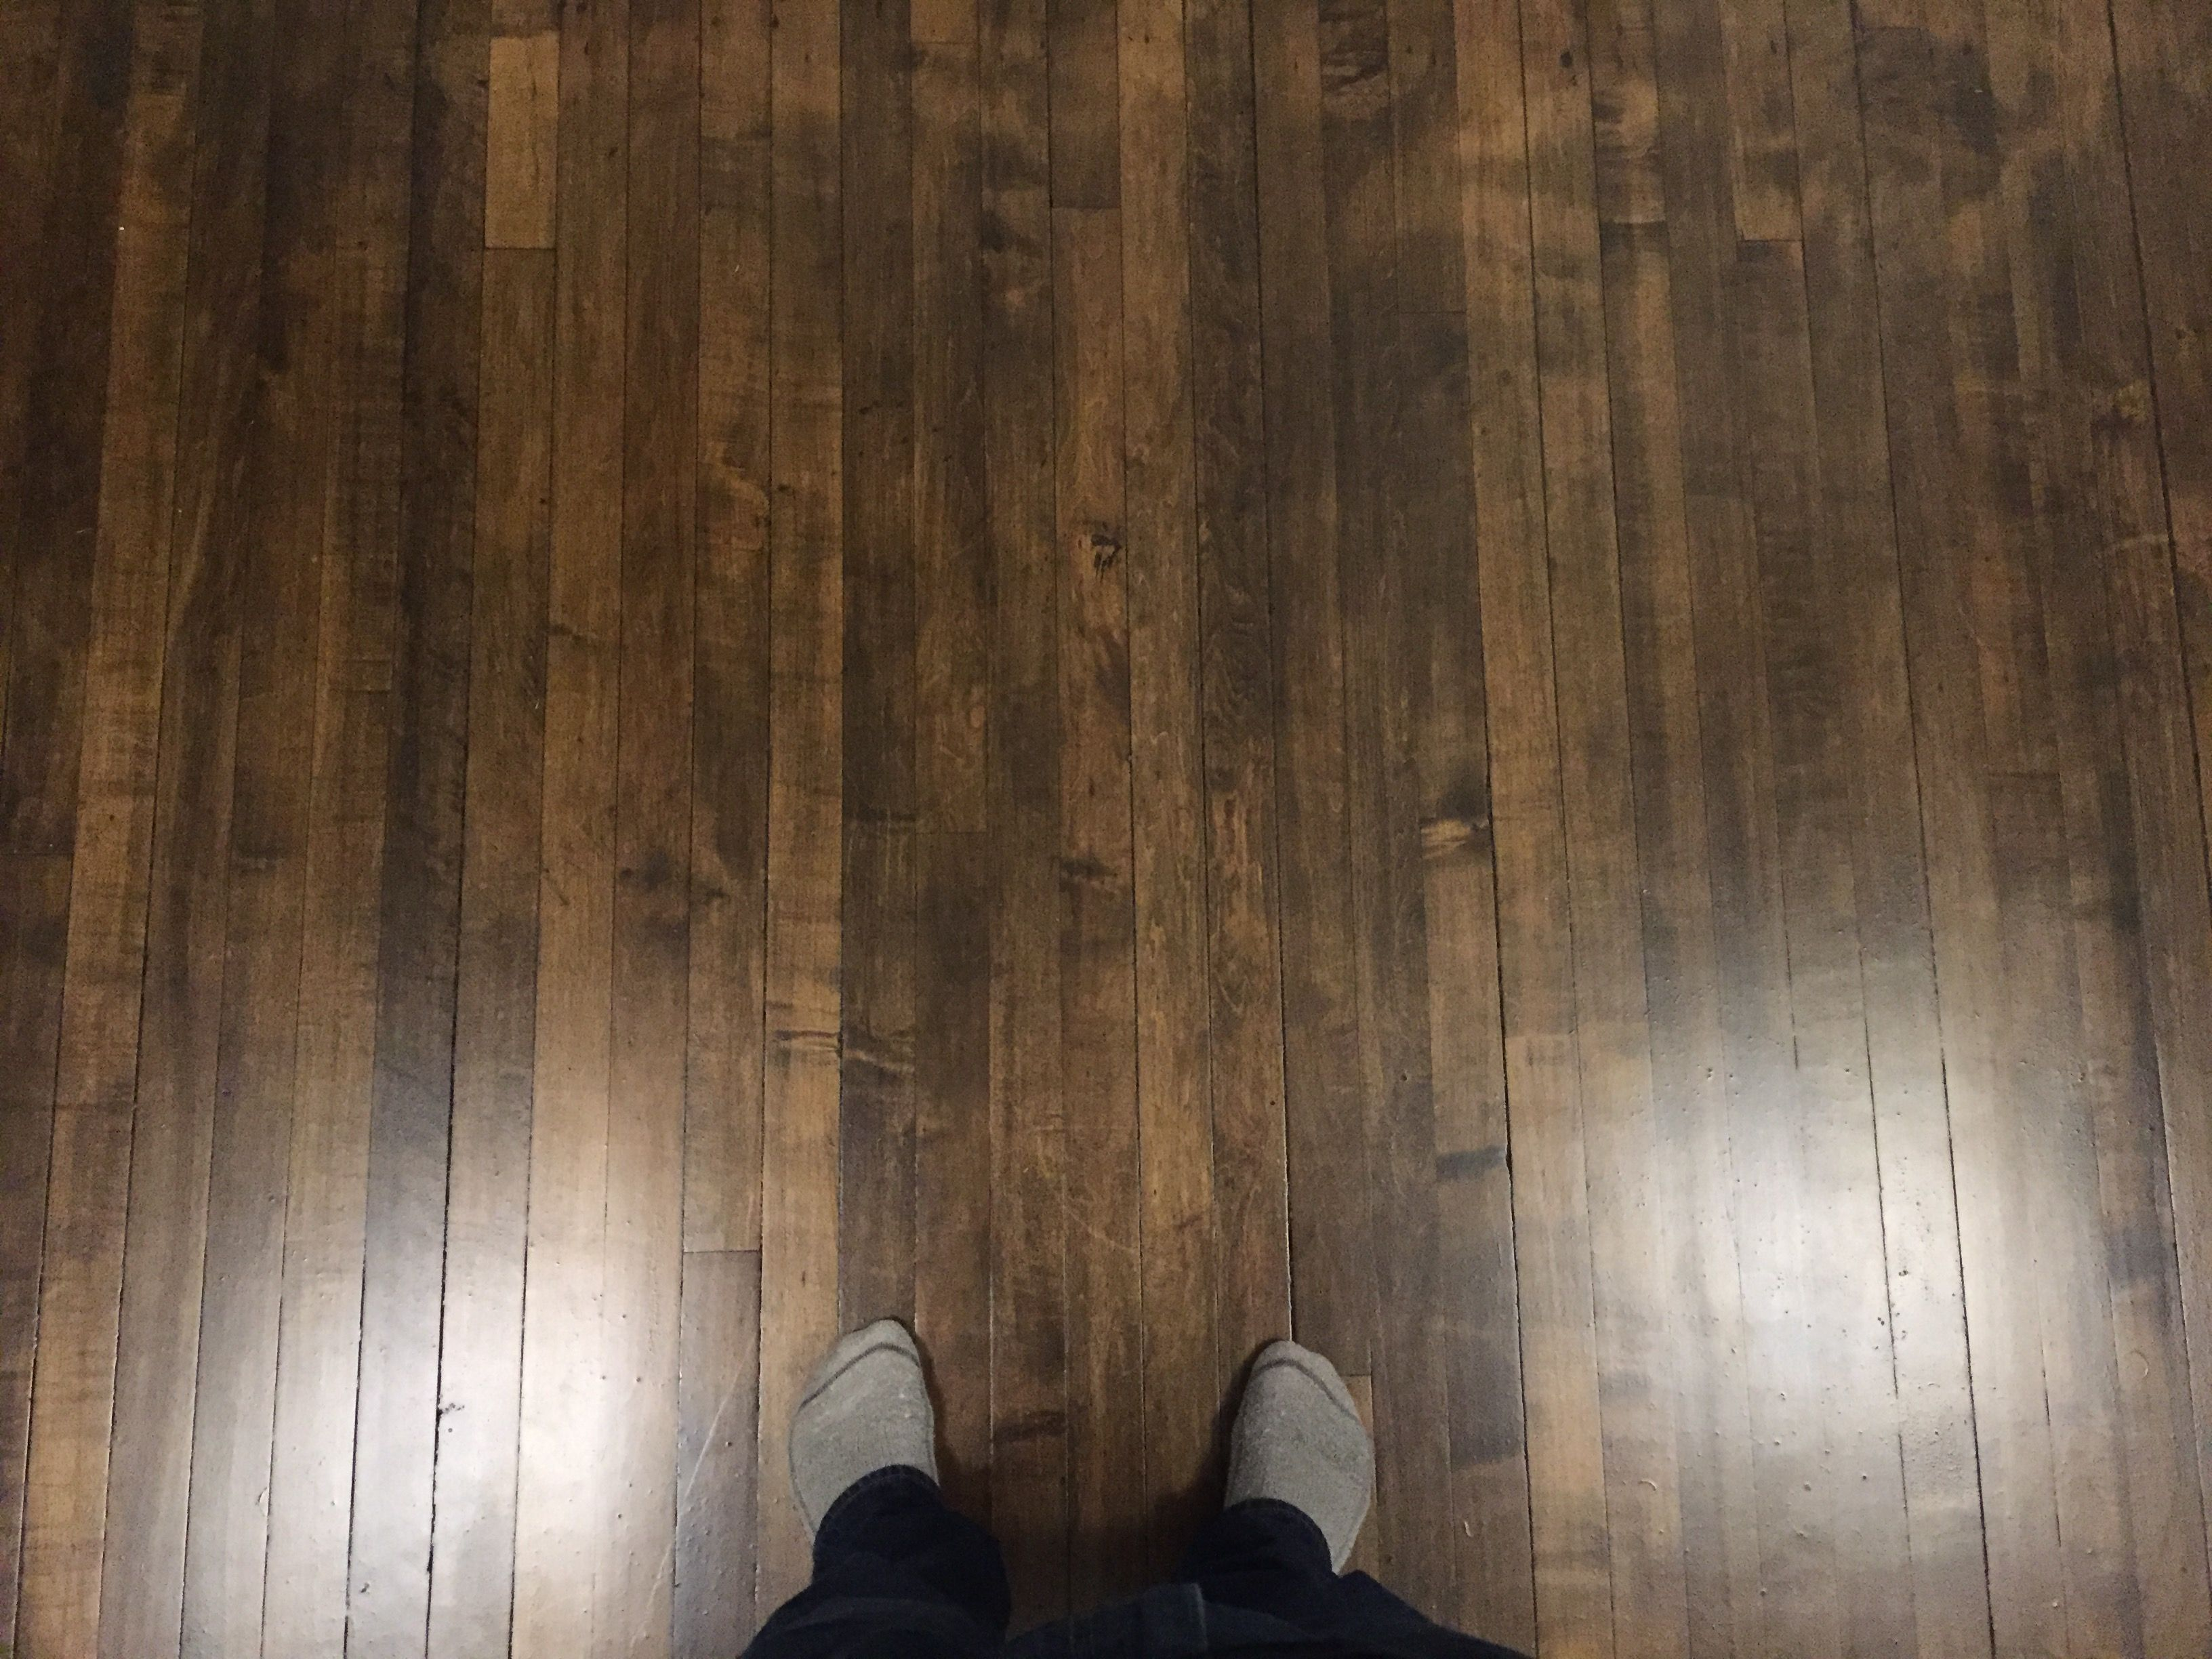 How I stained my maple floors dark. (SPOILER: GEL STAIN